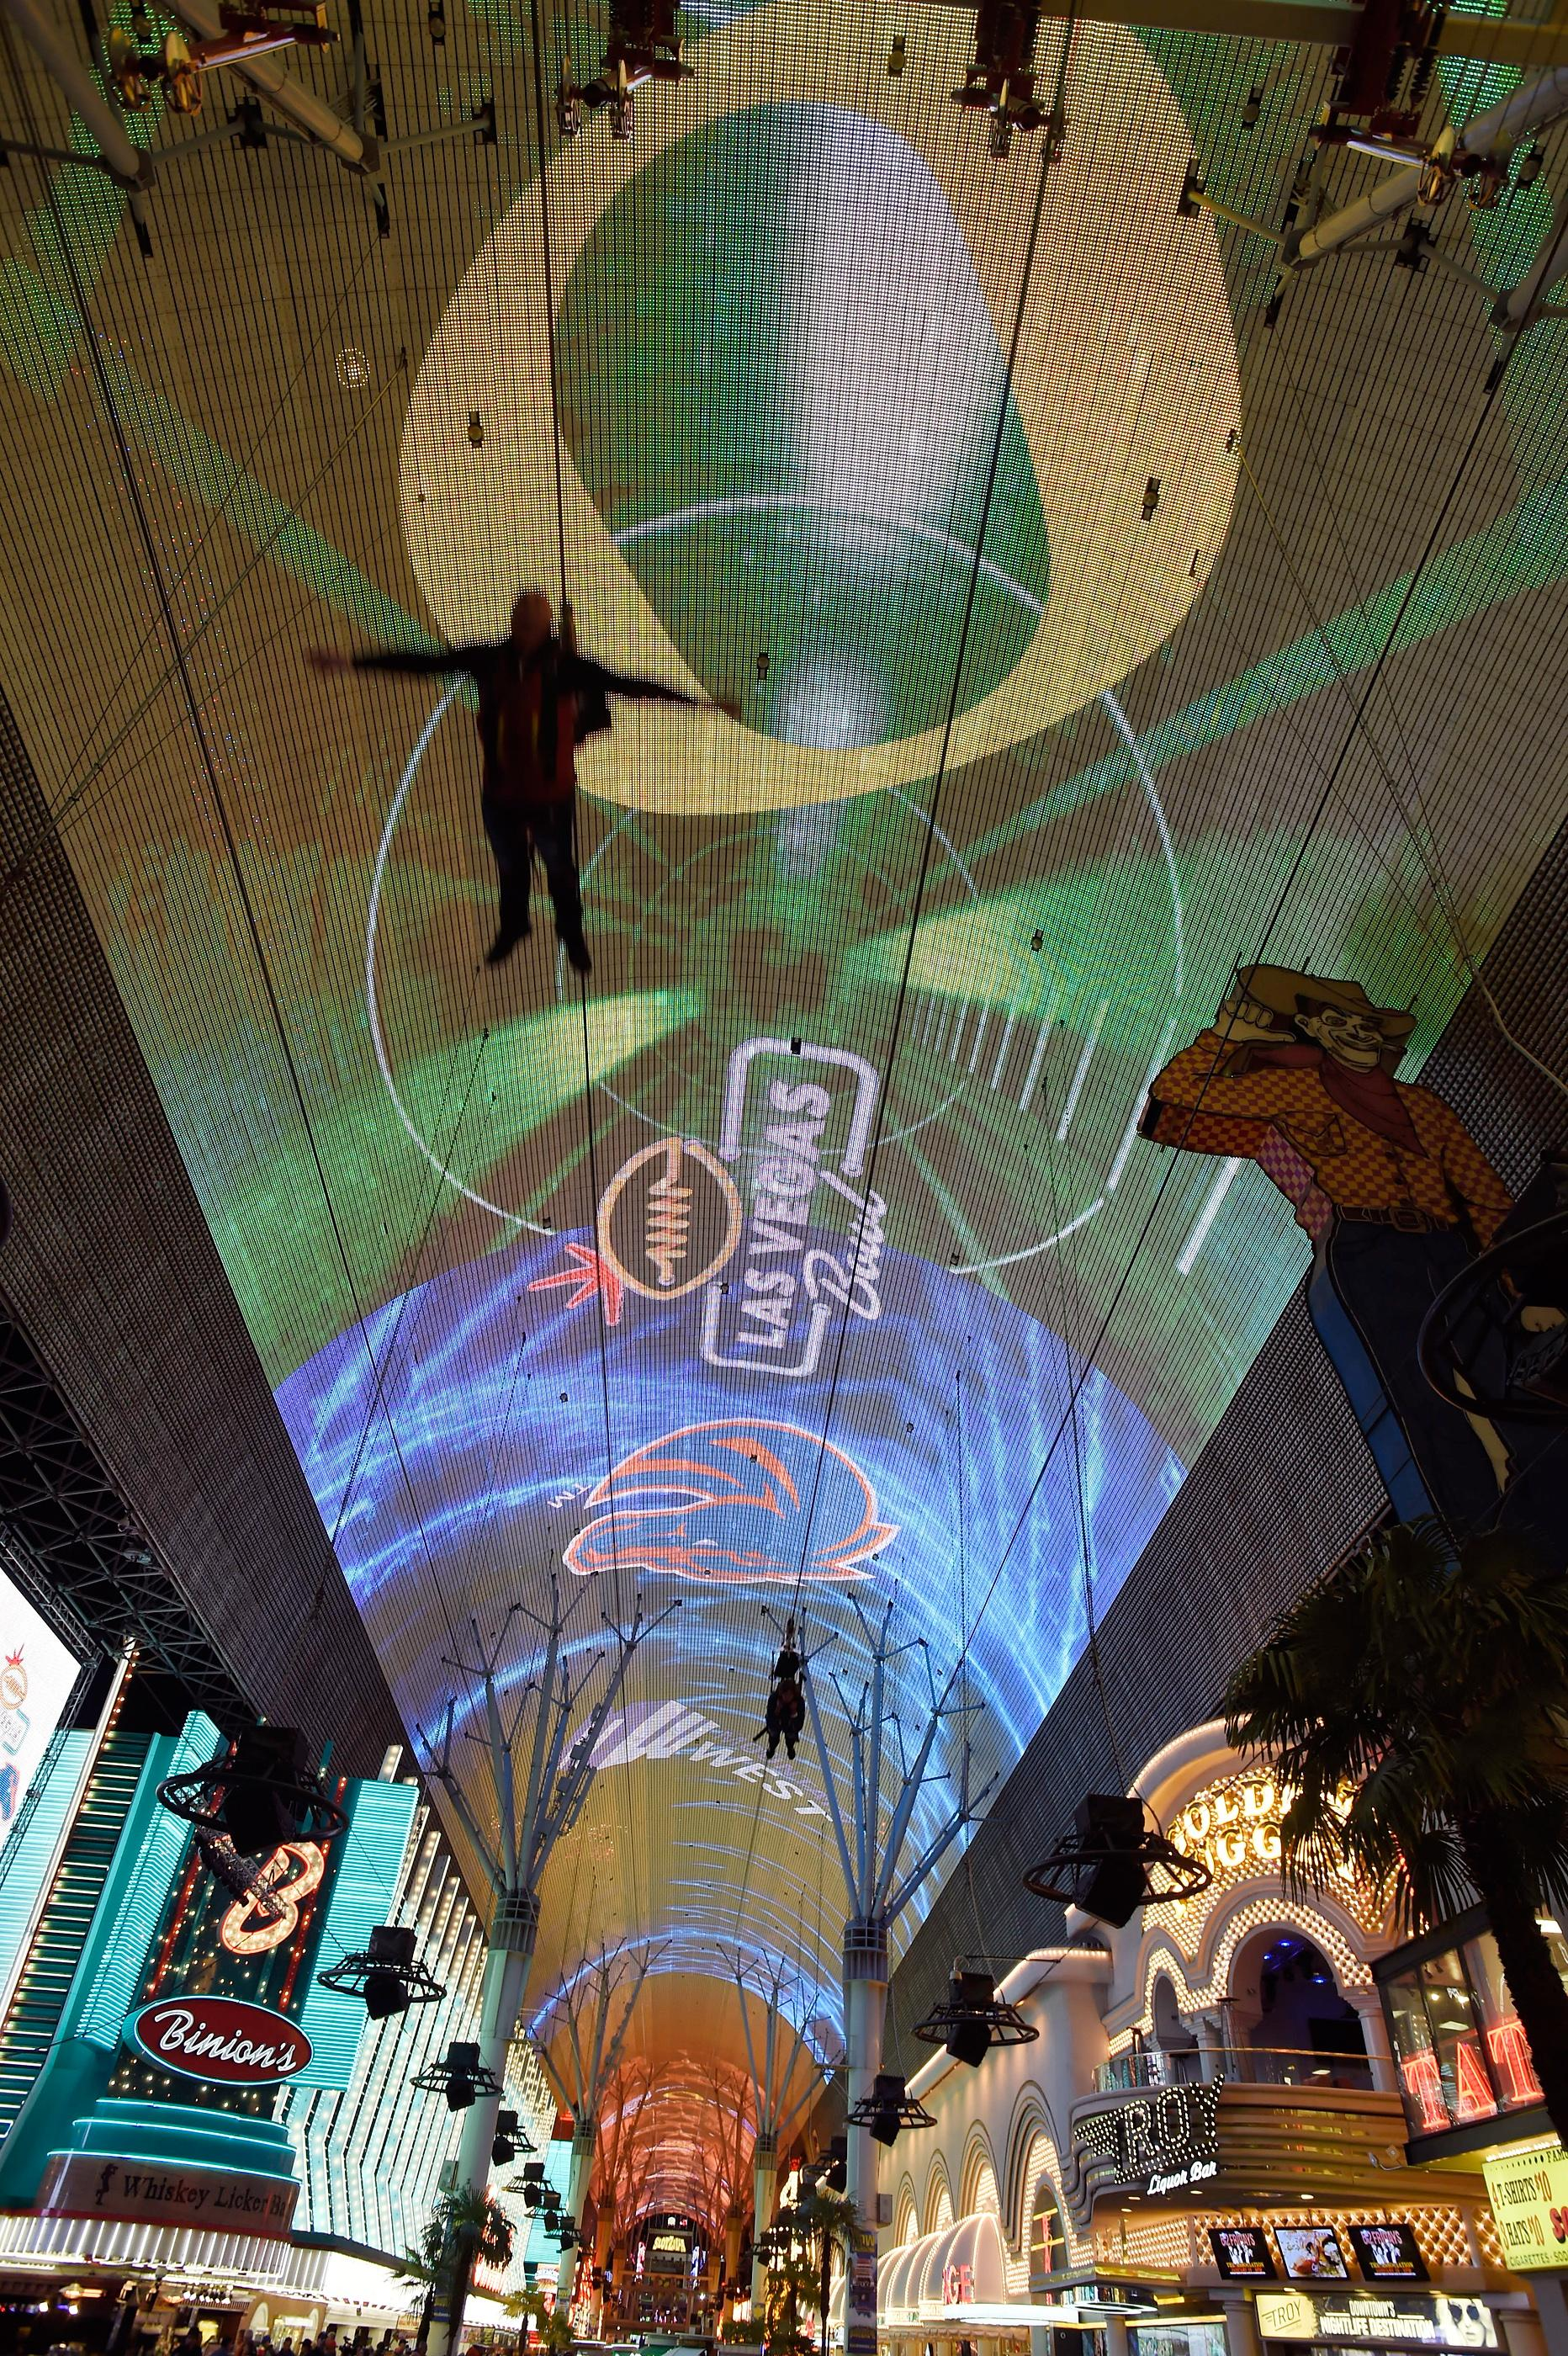 People glad along the zip line during before a pep rally at the Fremont Street Experience Friday, Dec. 15, 2017, in Las Vegas. The Boise State Bronco will take on the Oregon Ducks in the 26th edition of the Las Vegas Bowl at Sam Boyd Stadium on Saturday. CREDIT: David Becker/Las Vegas News Bureau